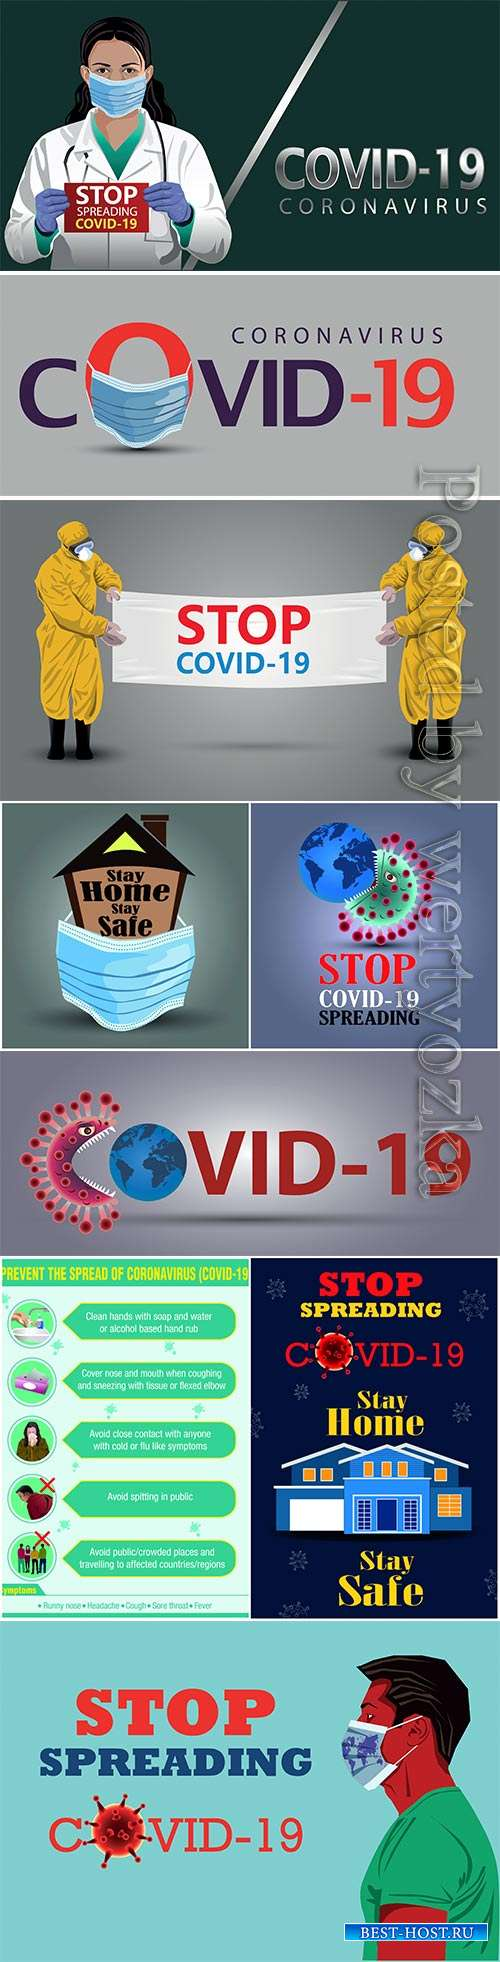 COVID 19, Coranavirus vector illustration sets # 15